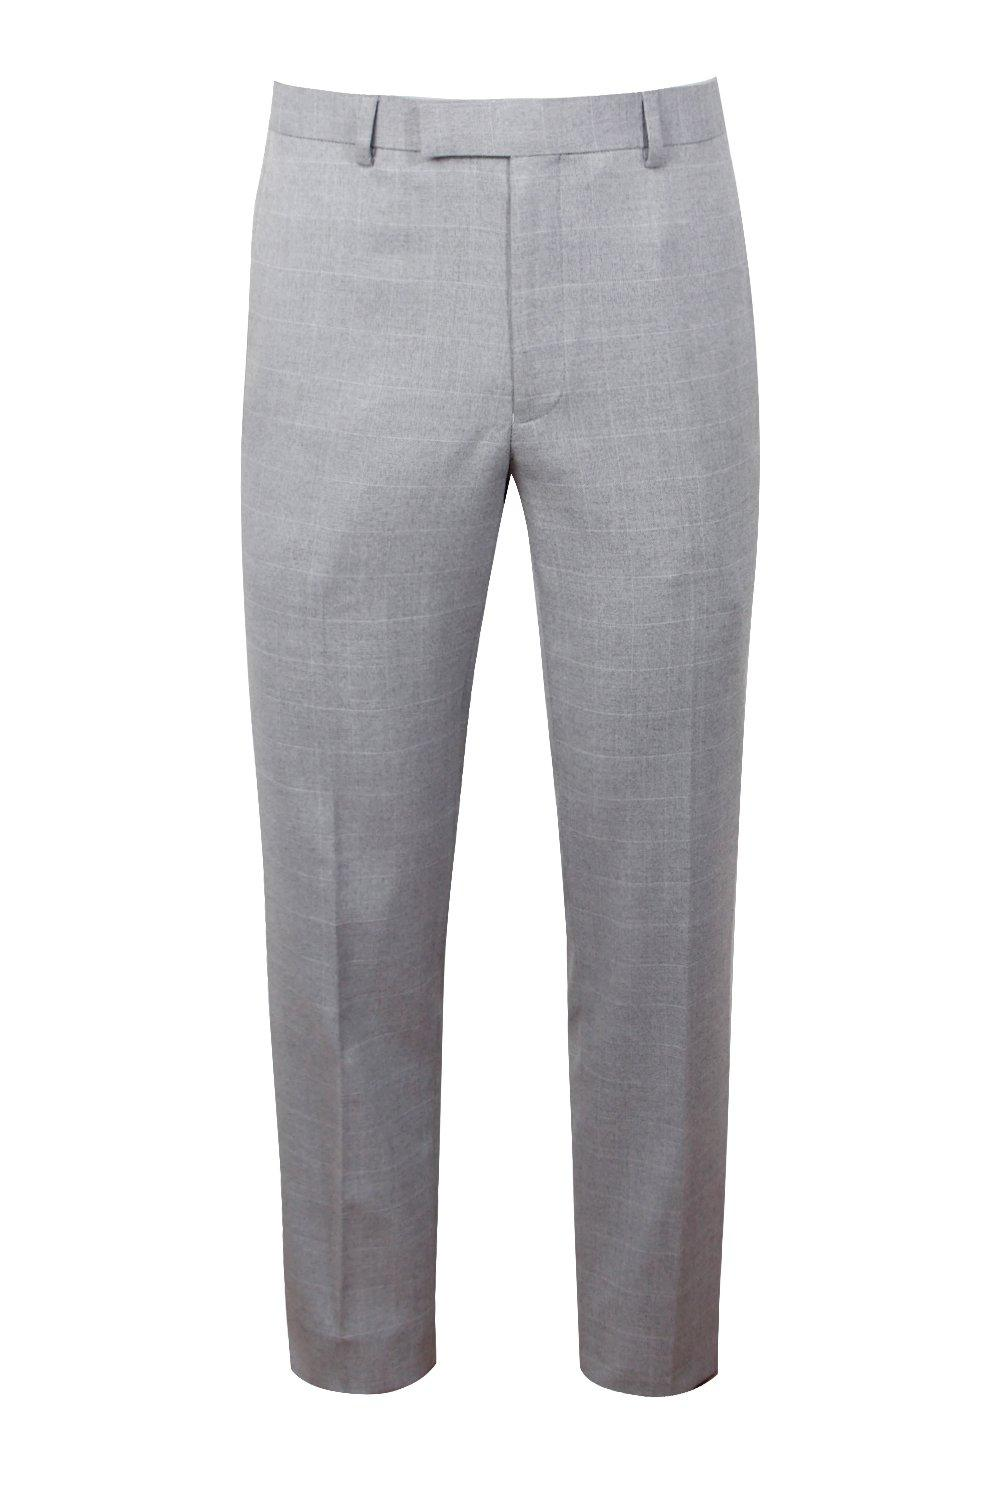 boohooMAN light grey Window Pane Check Skinny Fit Trouser